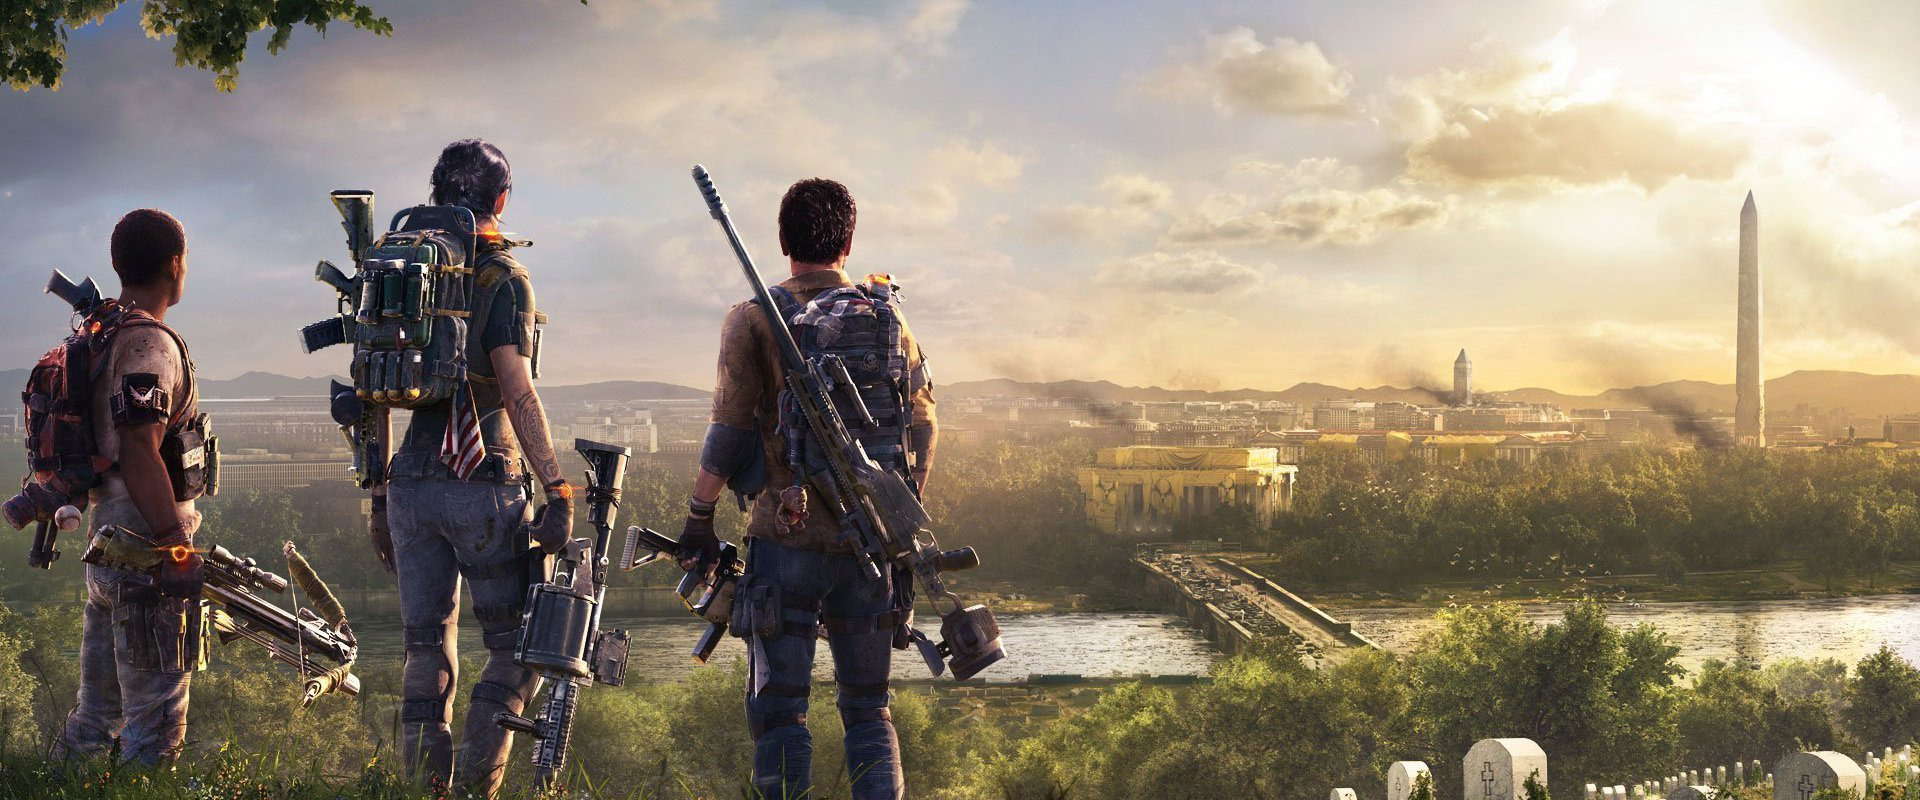 The Division 2 Concept Art